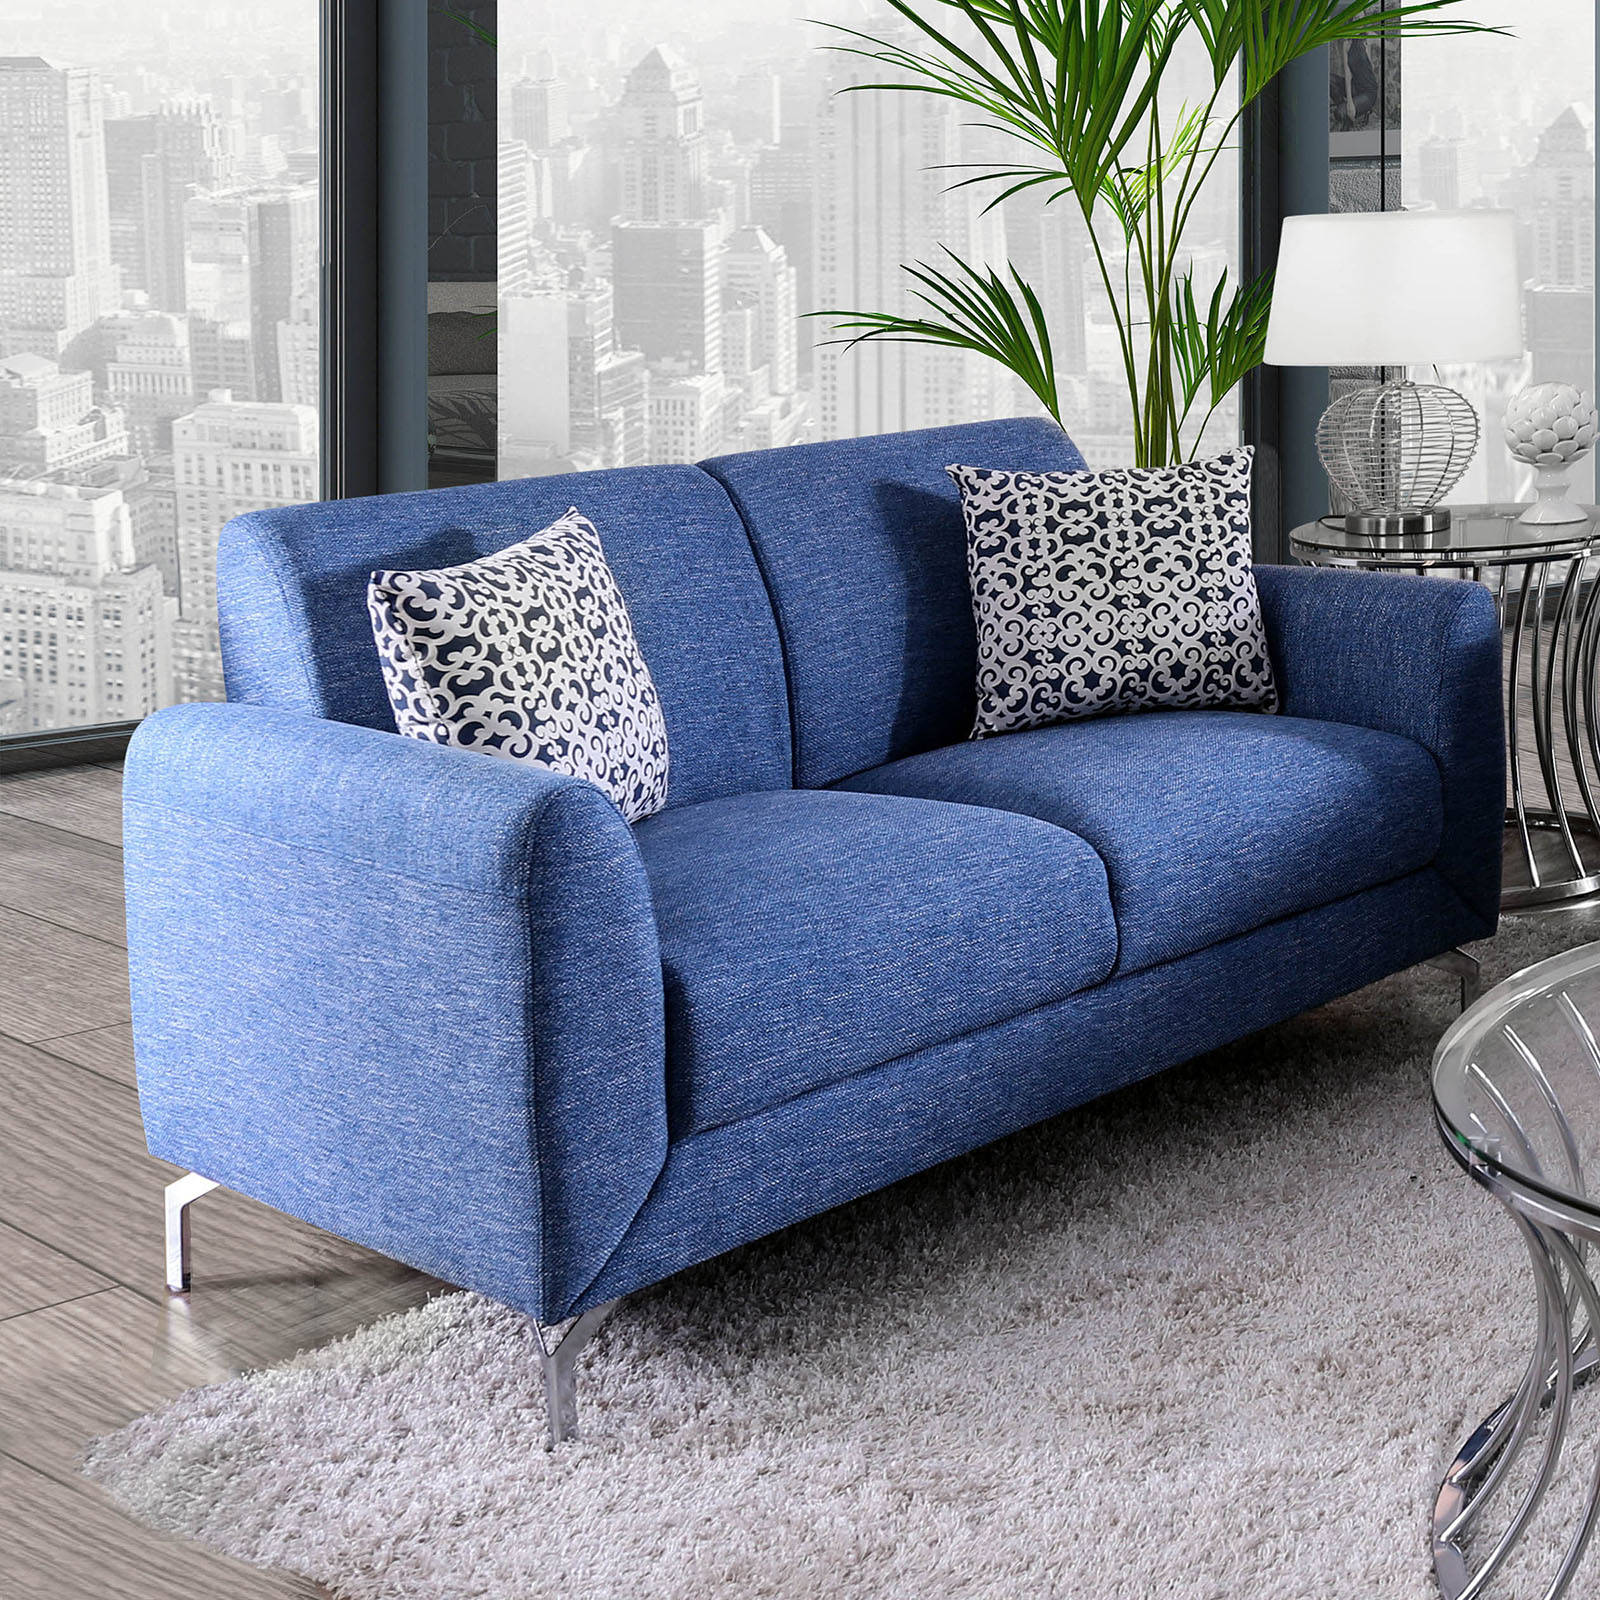 Furniture of america lauritz blue loveseat click to enlarge